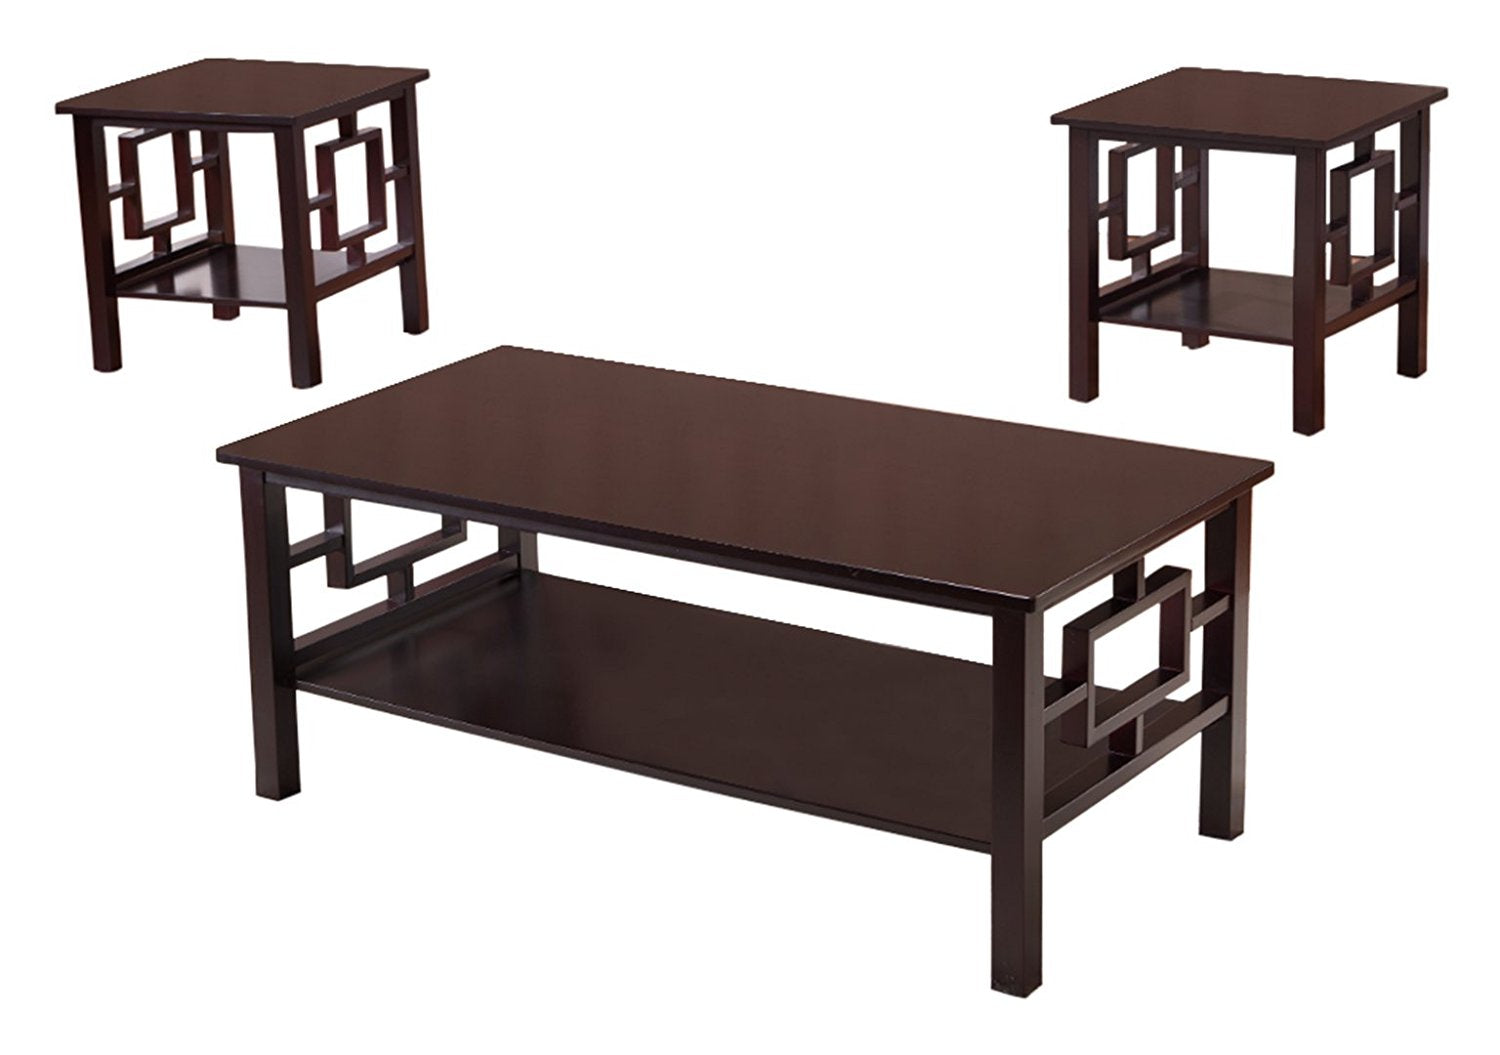 Sabina 3 Piece Coffee Table Set Dark Cherry Wood With